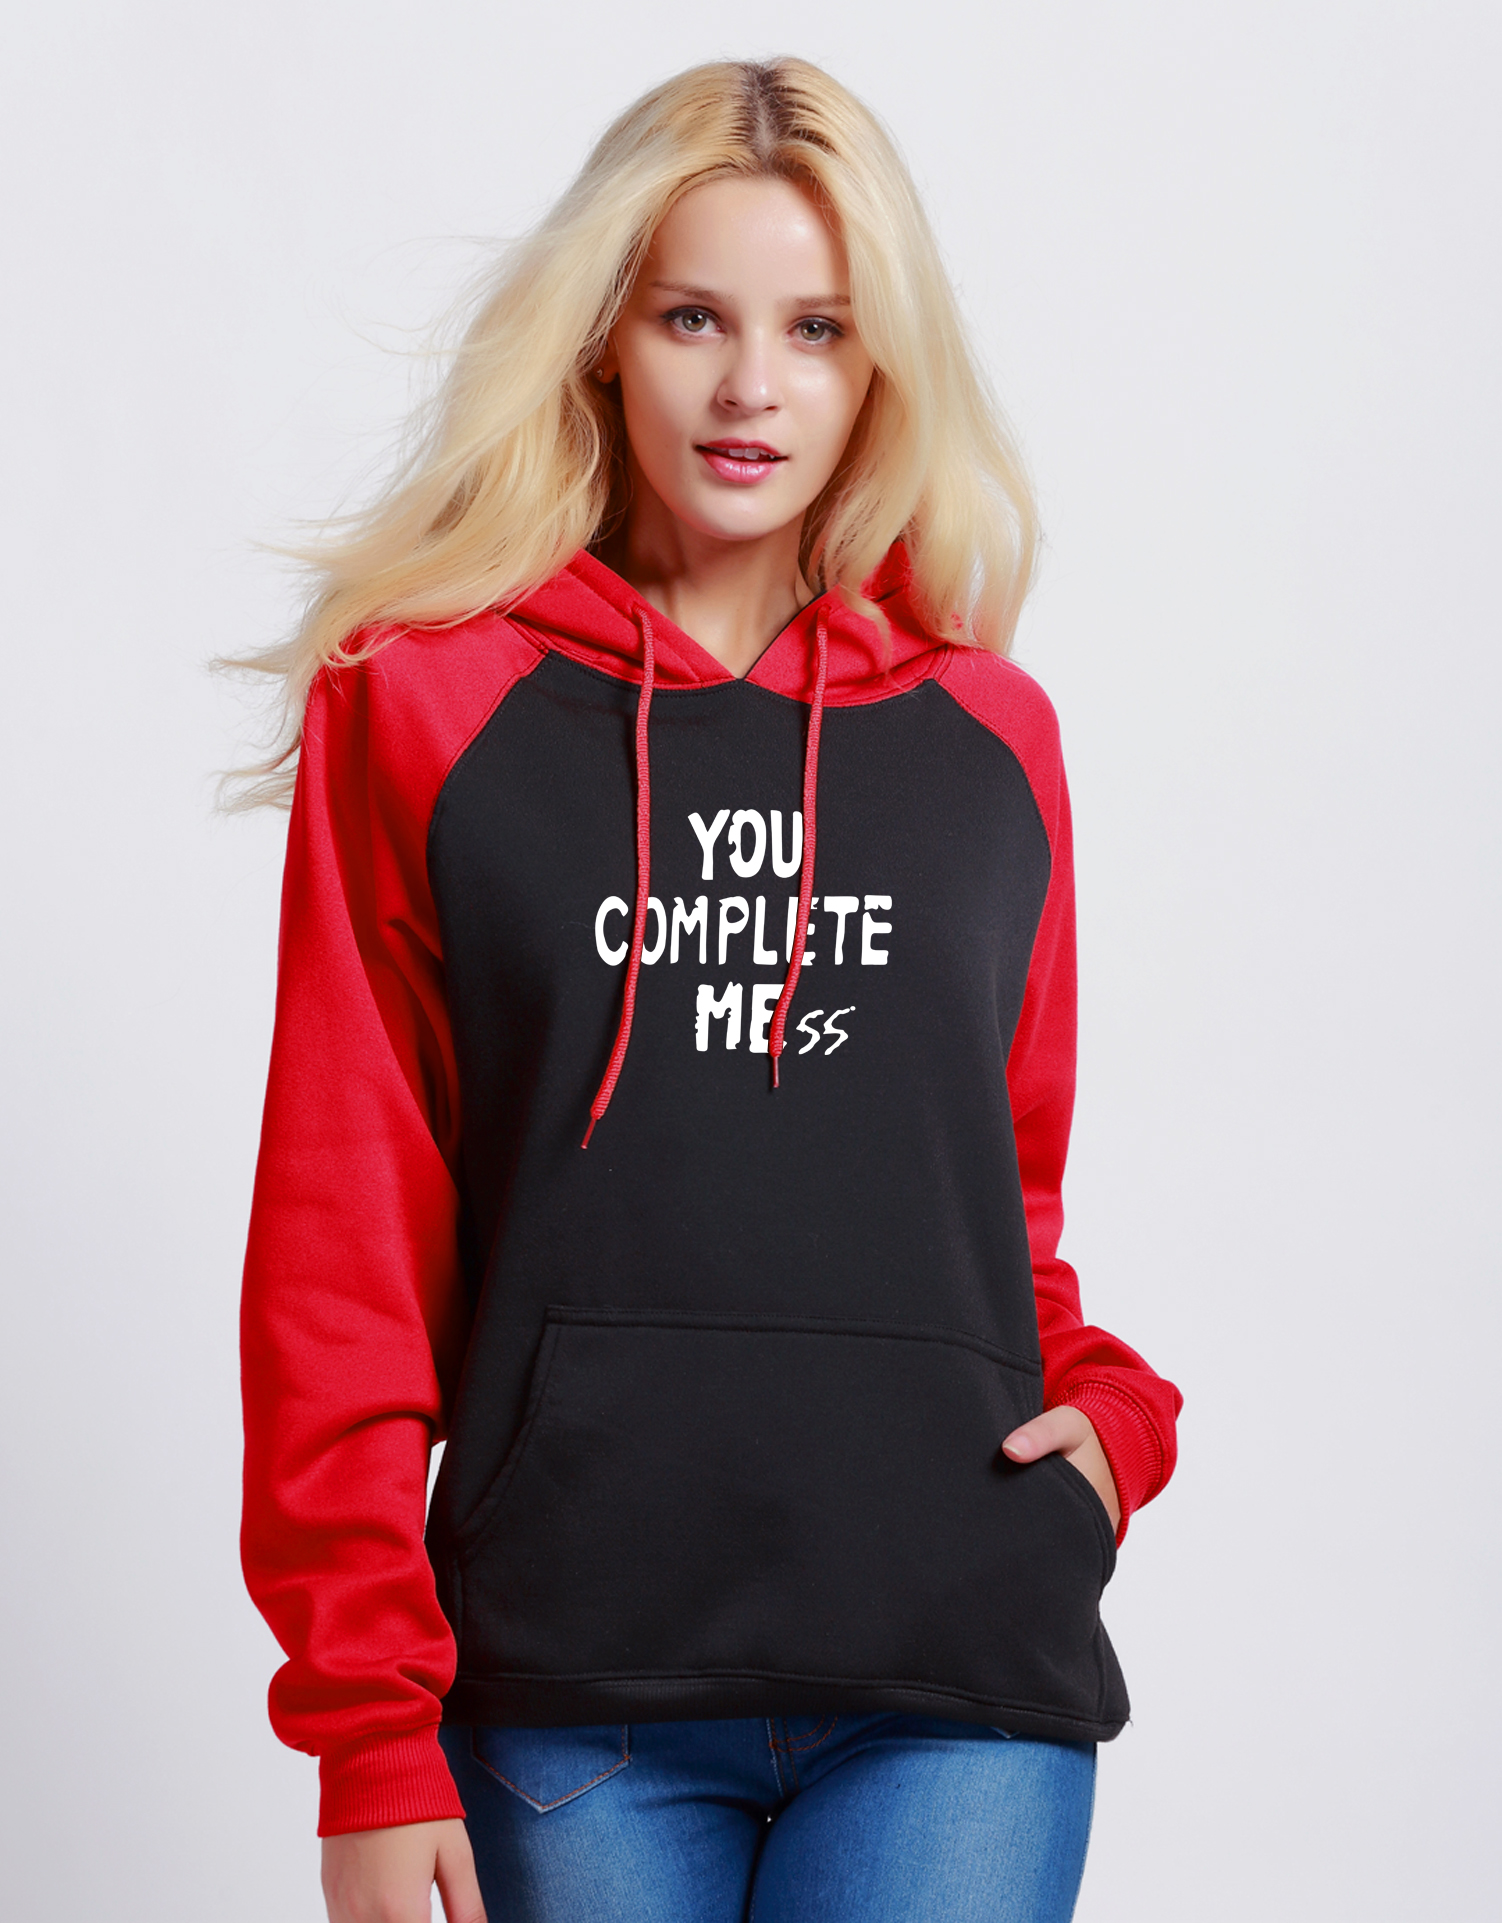 Letter Print YOU COMPLETE ME Womens Sportswear 2018 Autumn Fashion Hoody Winter Sweatshirt Brand Streetwear Harajuku Hoodies ...